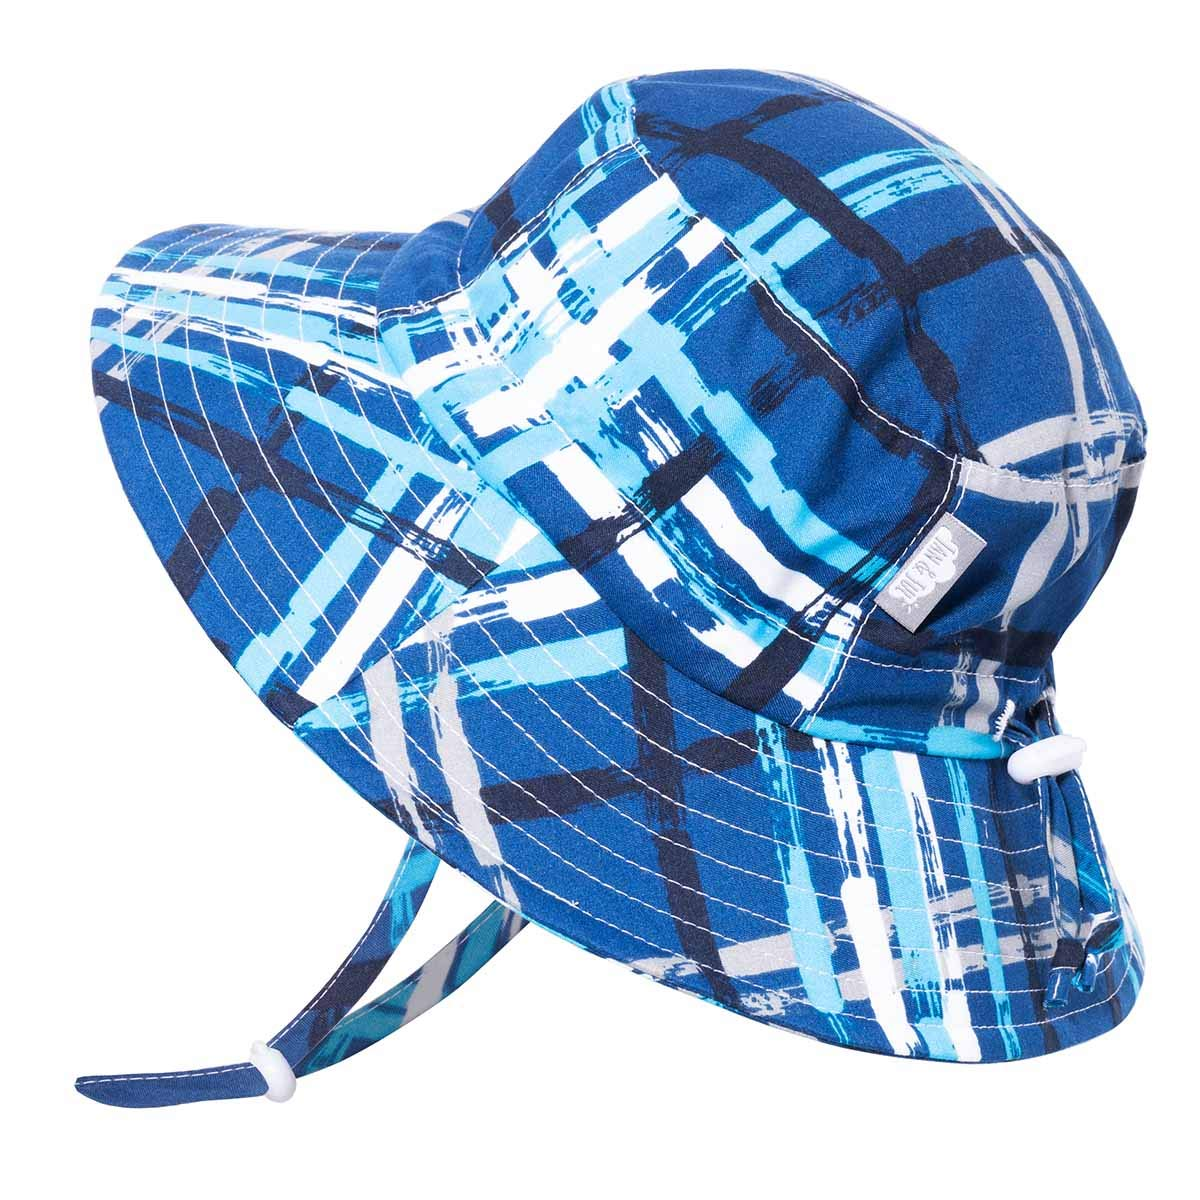 Jan & Jul Baby, Toddler, Kids' Aqua-Dry Sun-Hat with UV Protection, Adjustable Straps product image